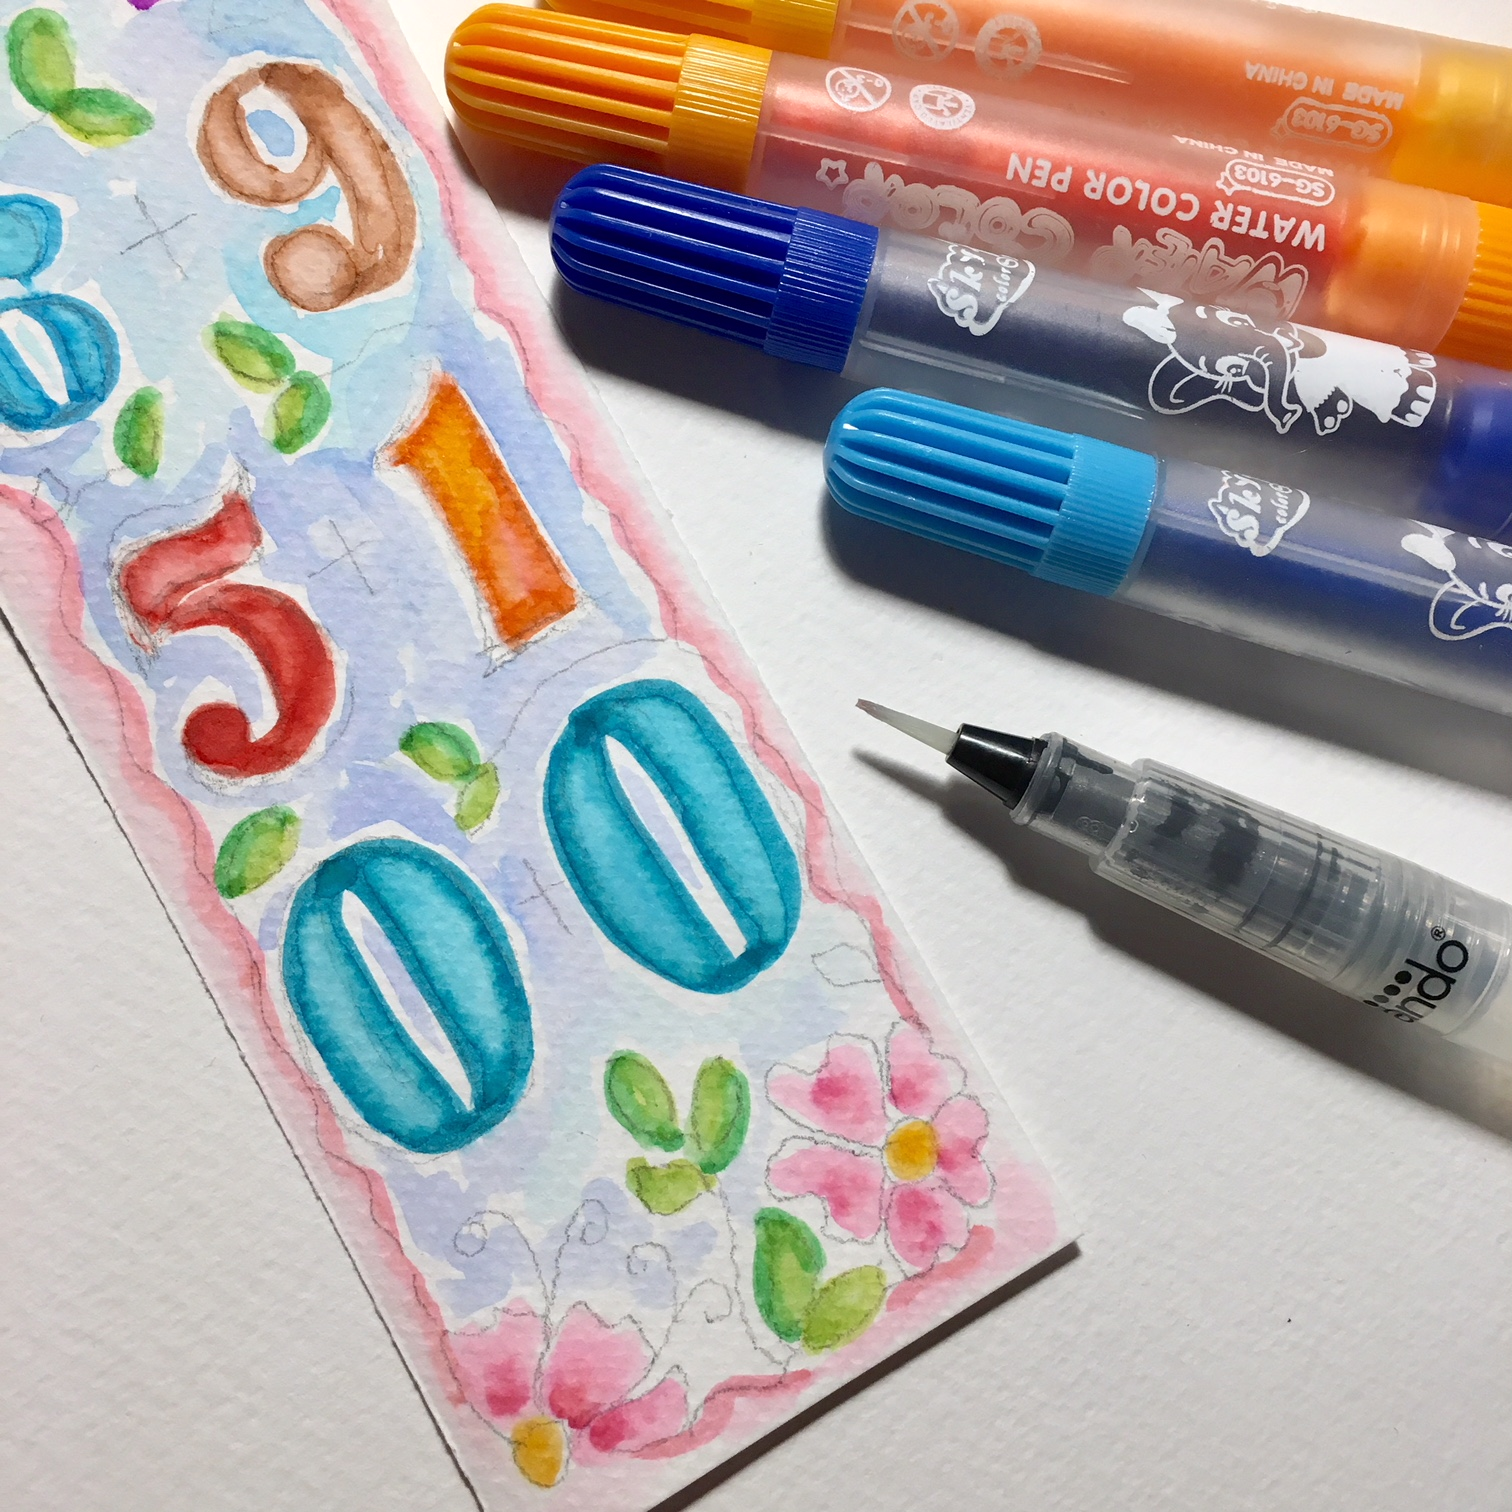 colouring the numbers with watercolour markers and a container brush